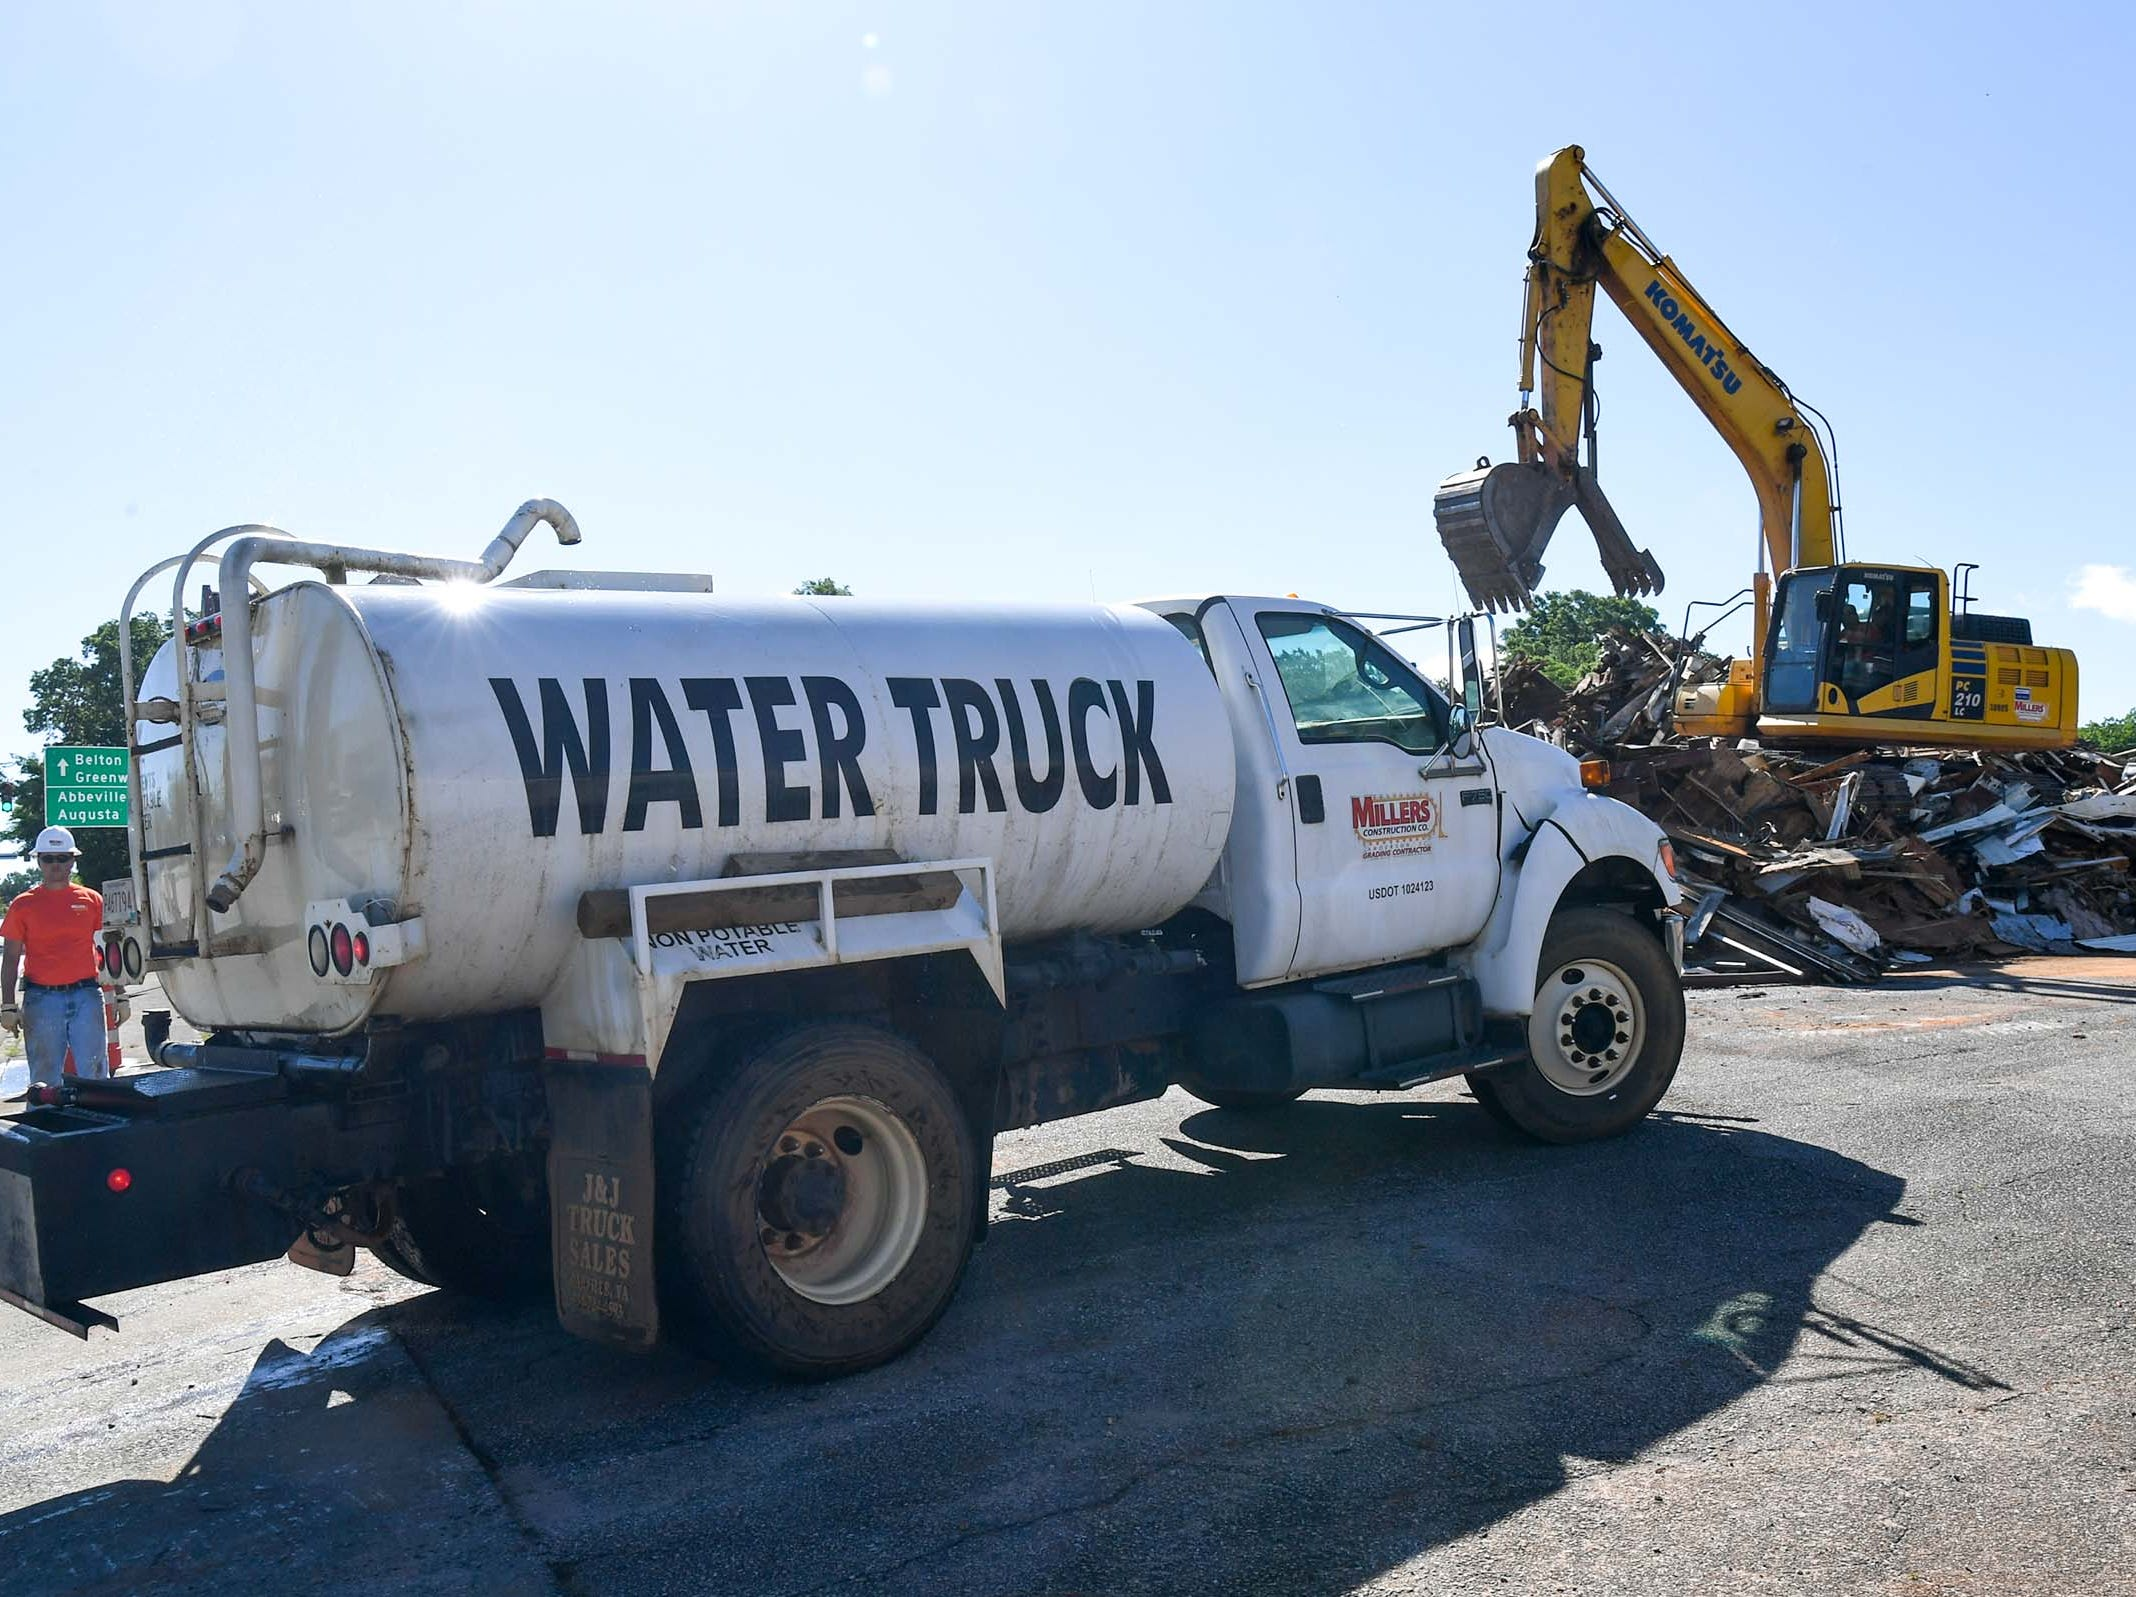 A water truck from Miller Construction of Anderson arrives while an excavator gets ready to load a dump truck with debris during demolition of the 600 South Main Street building Monday in Anderson. The building was used as a city planning and codes for years after McDougalds Funeral Home occupied it from 1934 to 1968 as their South Chapel.